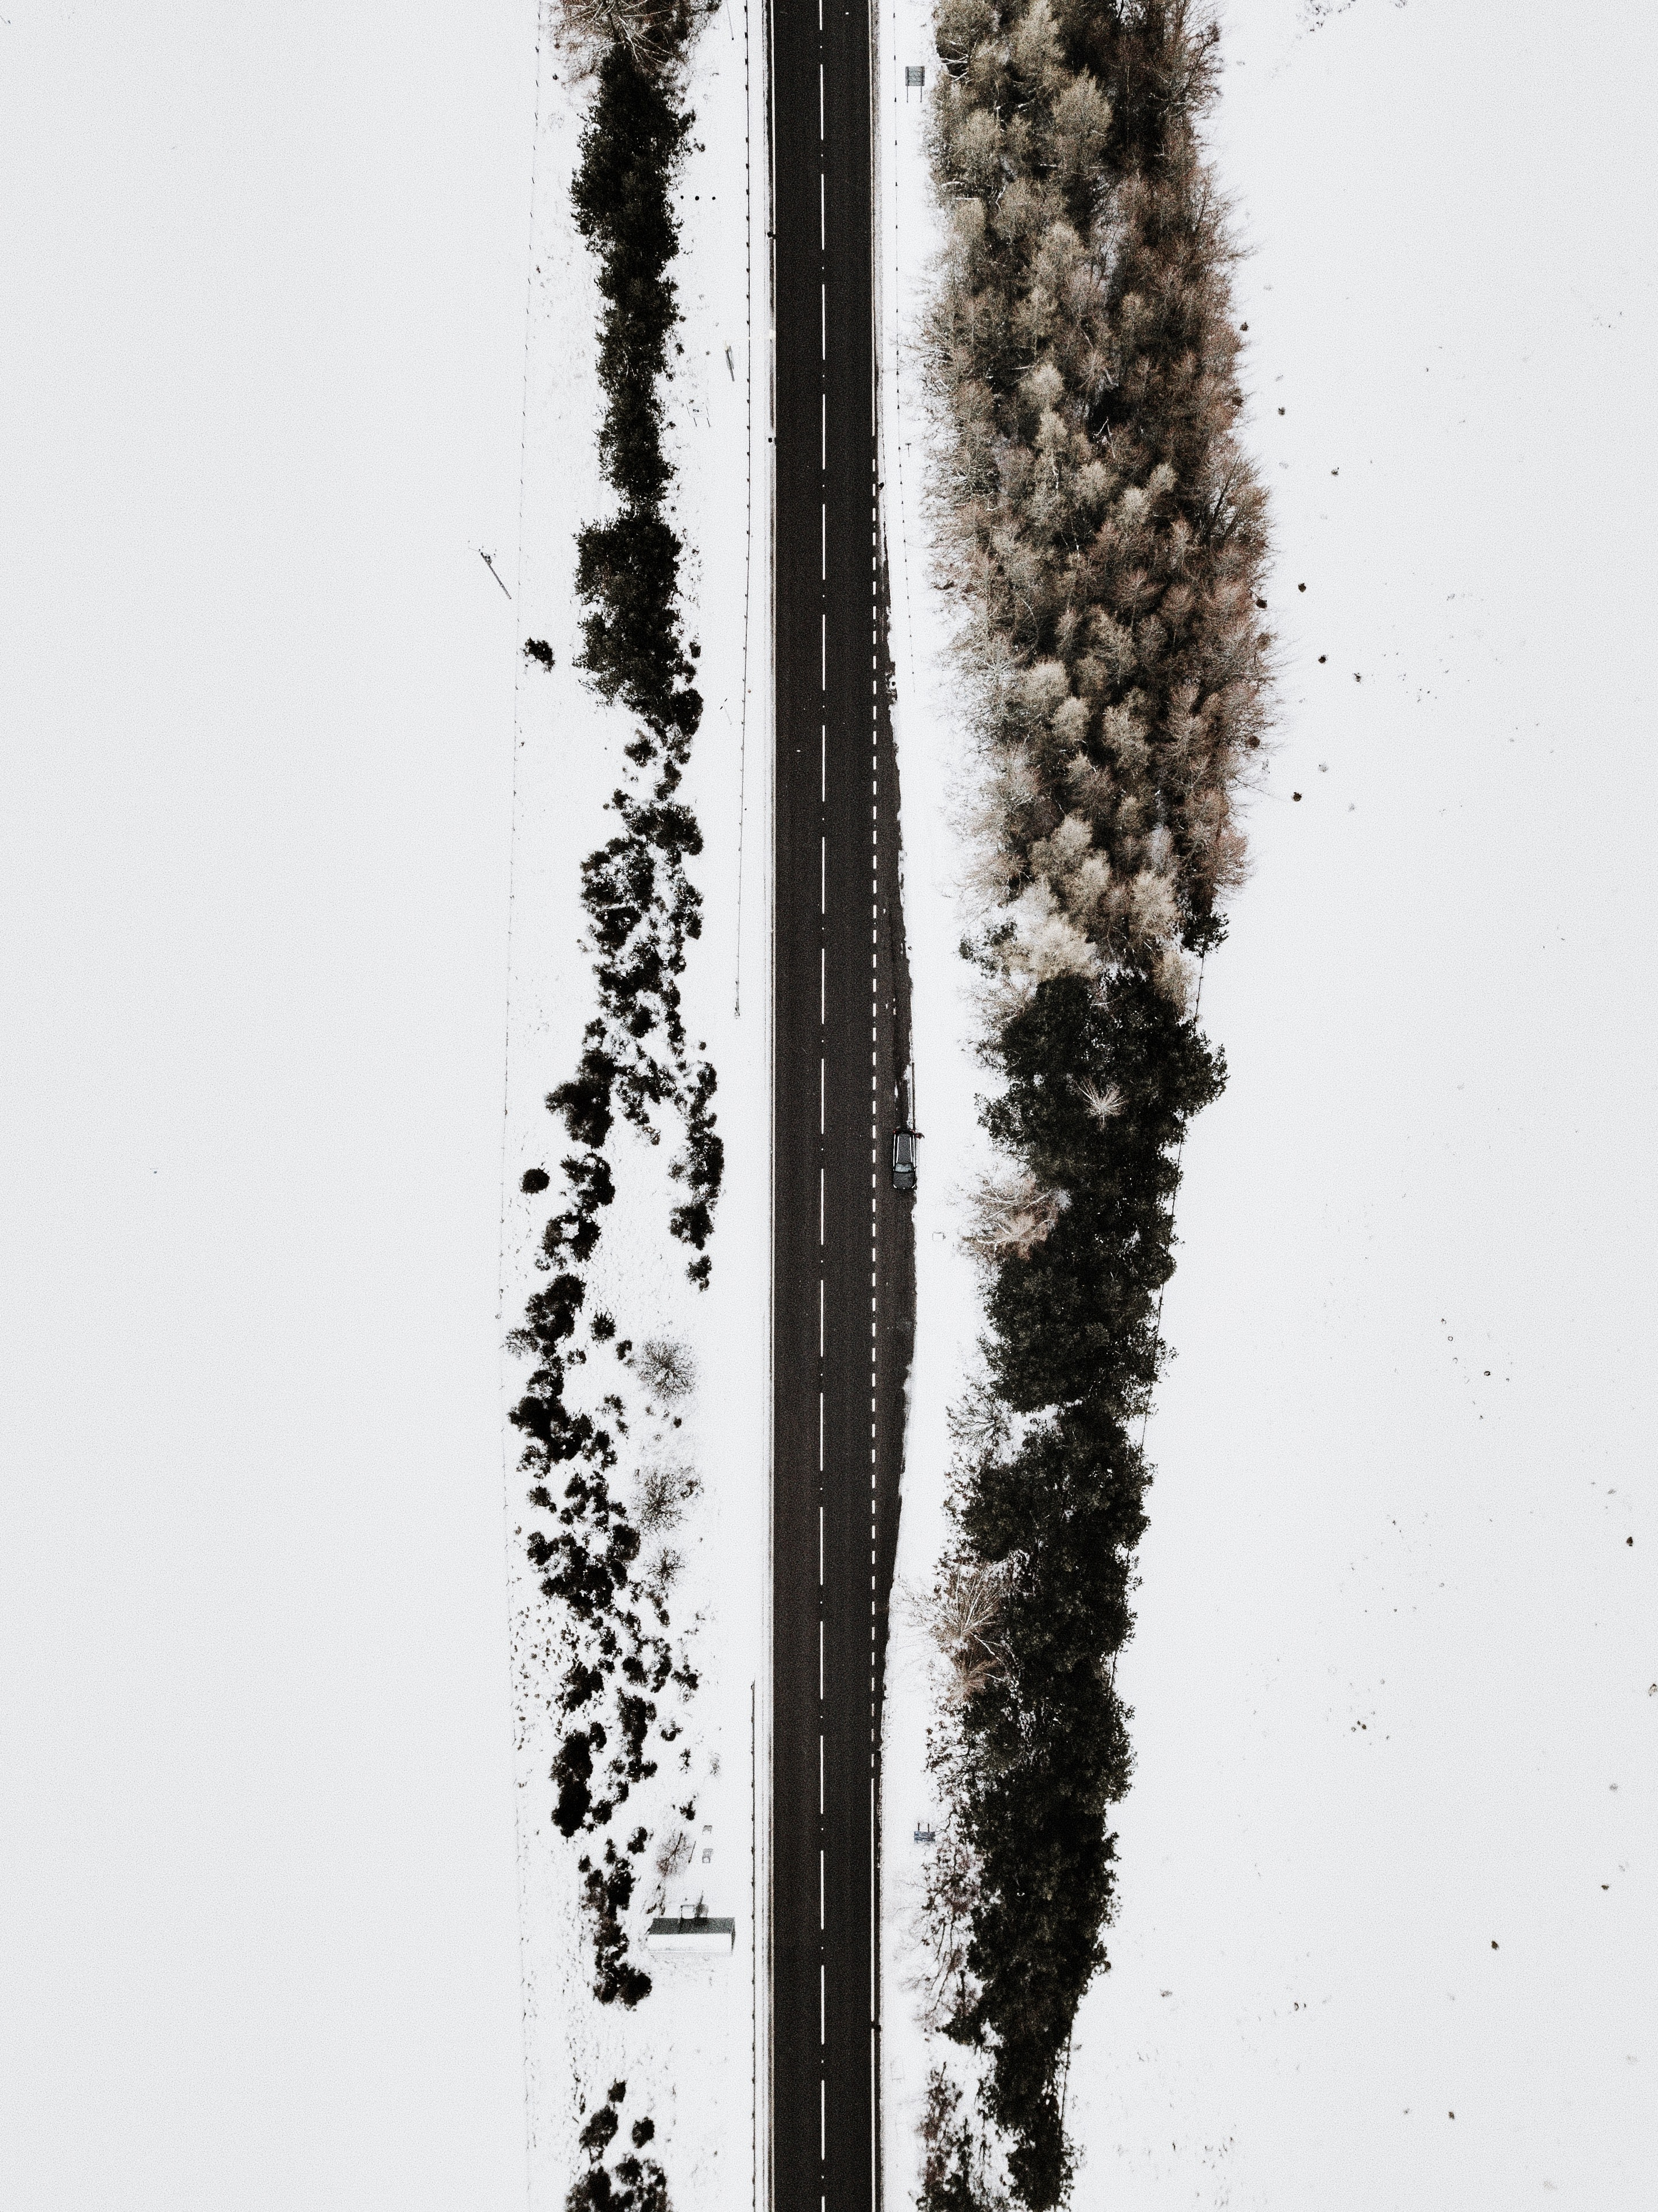 aerial photography of concrete roadway